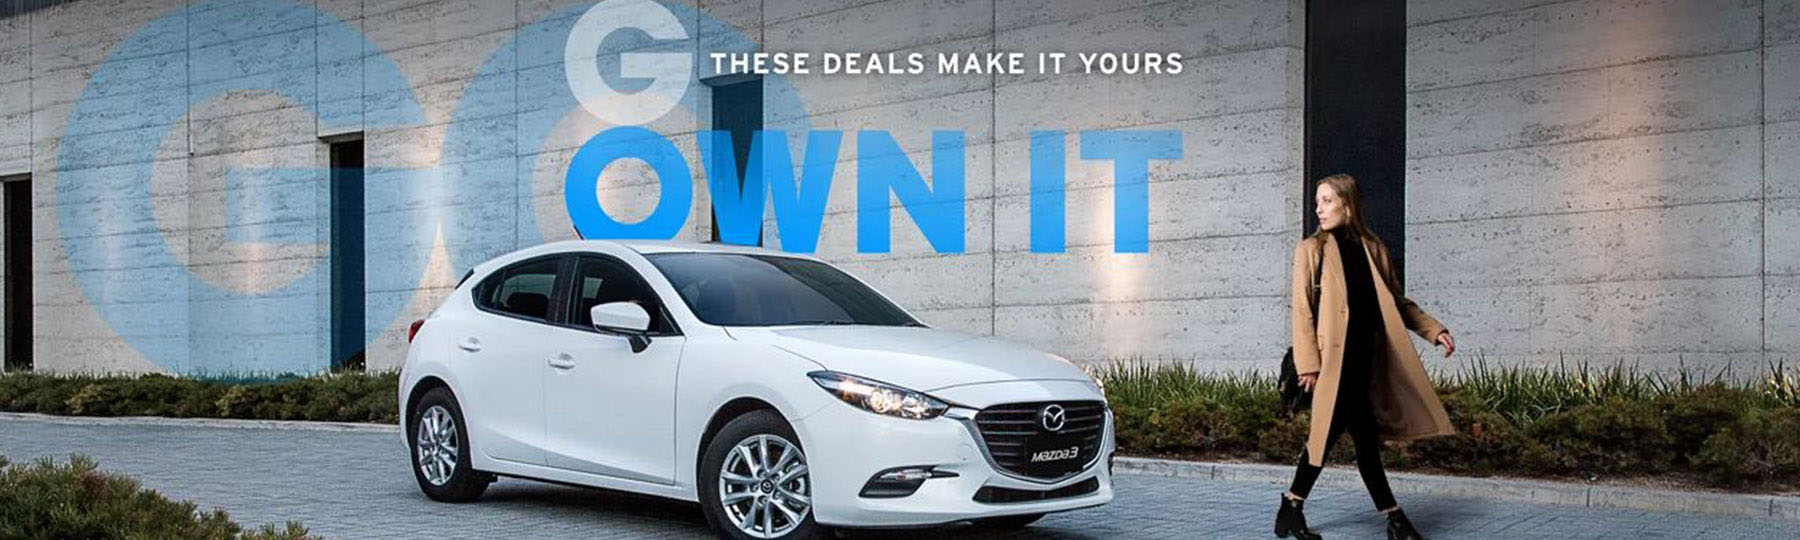 Mazda - Go Own It